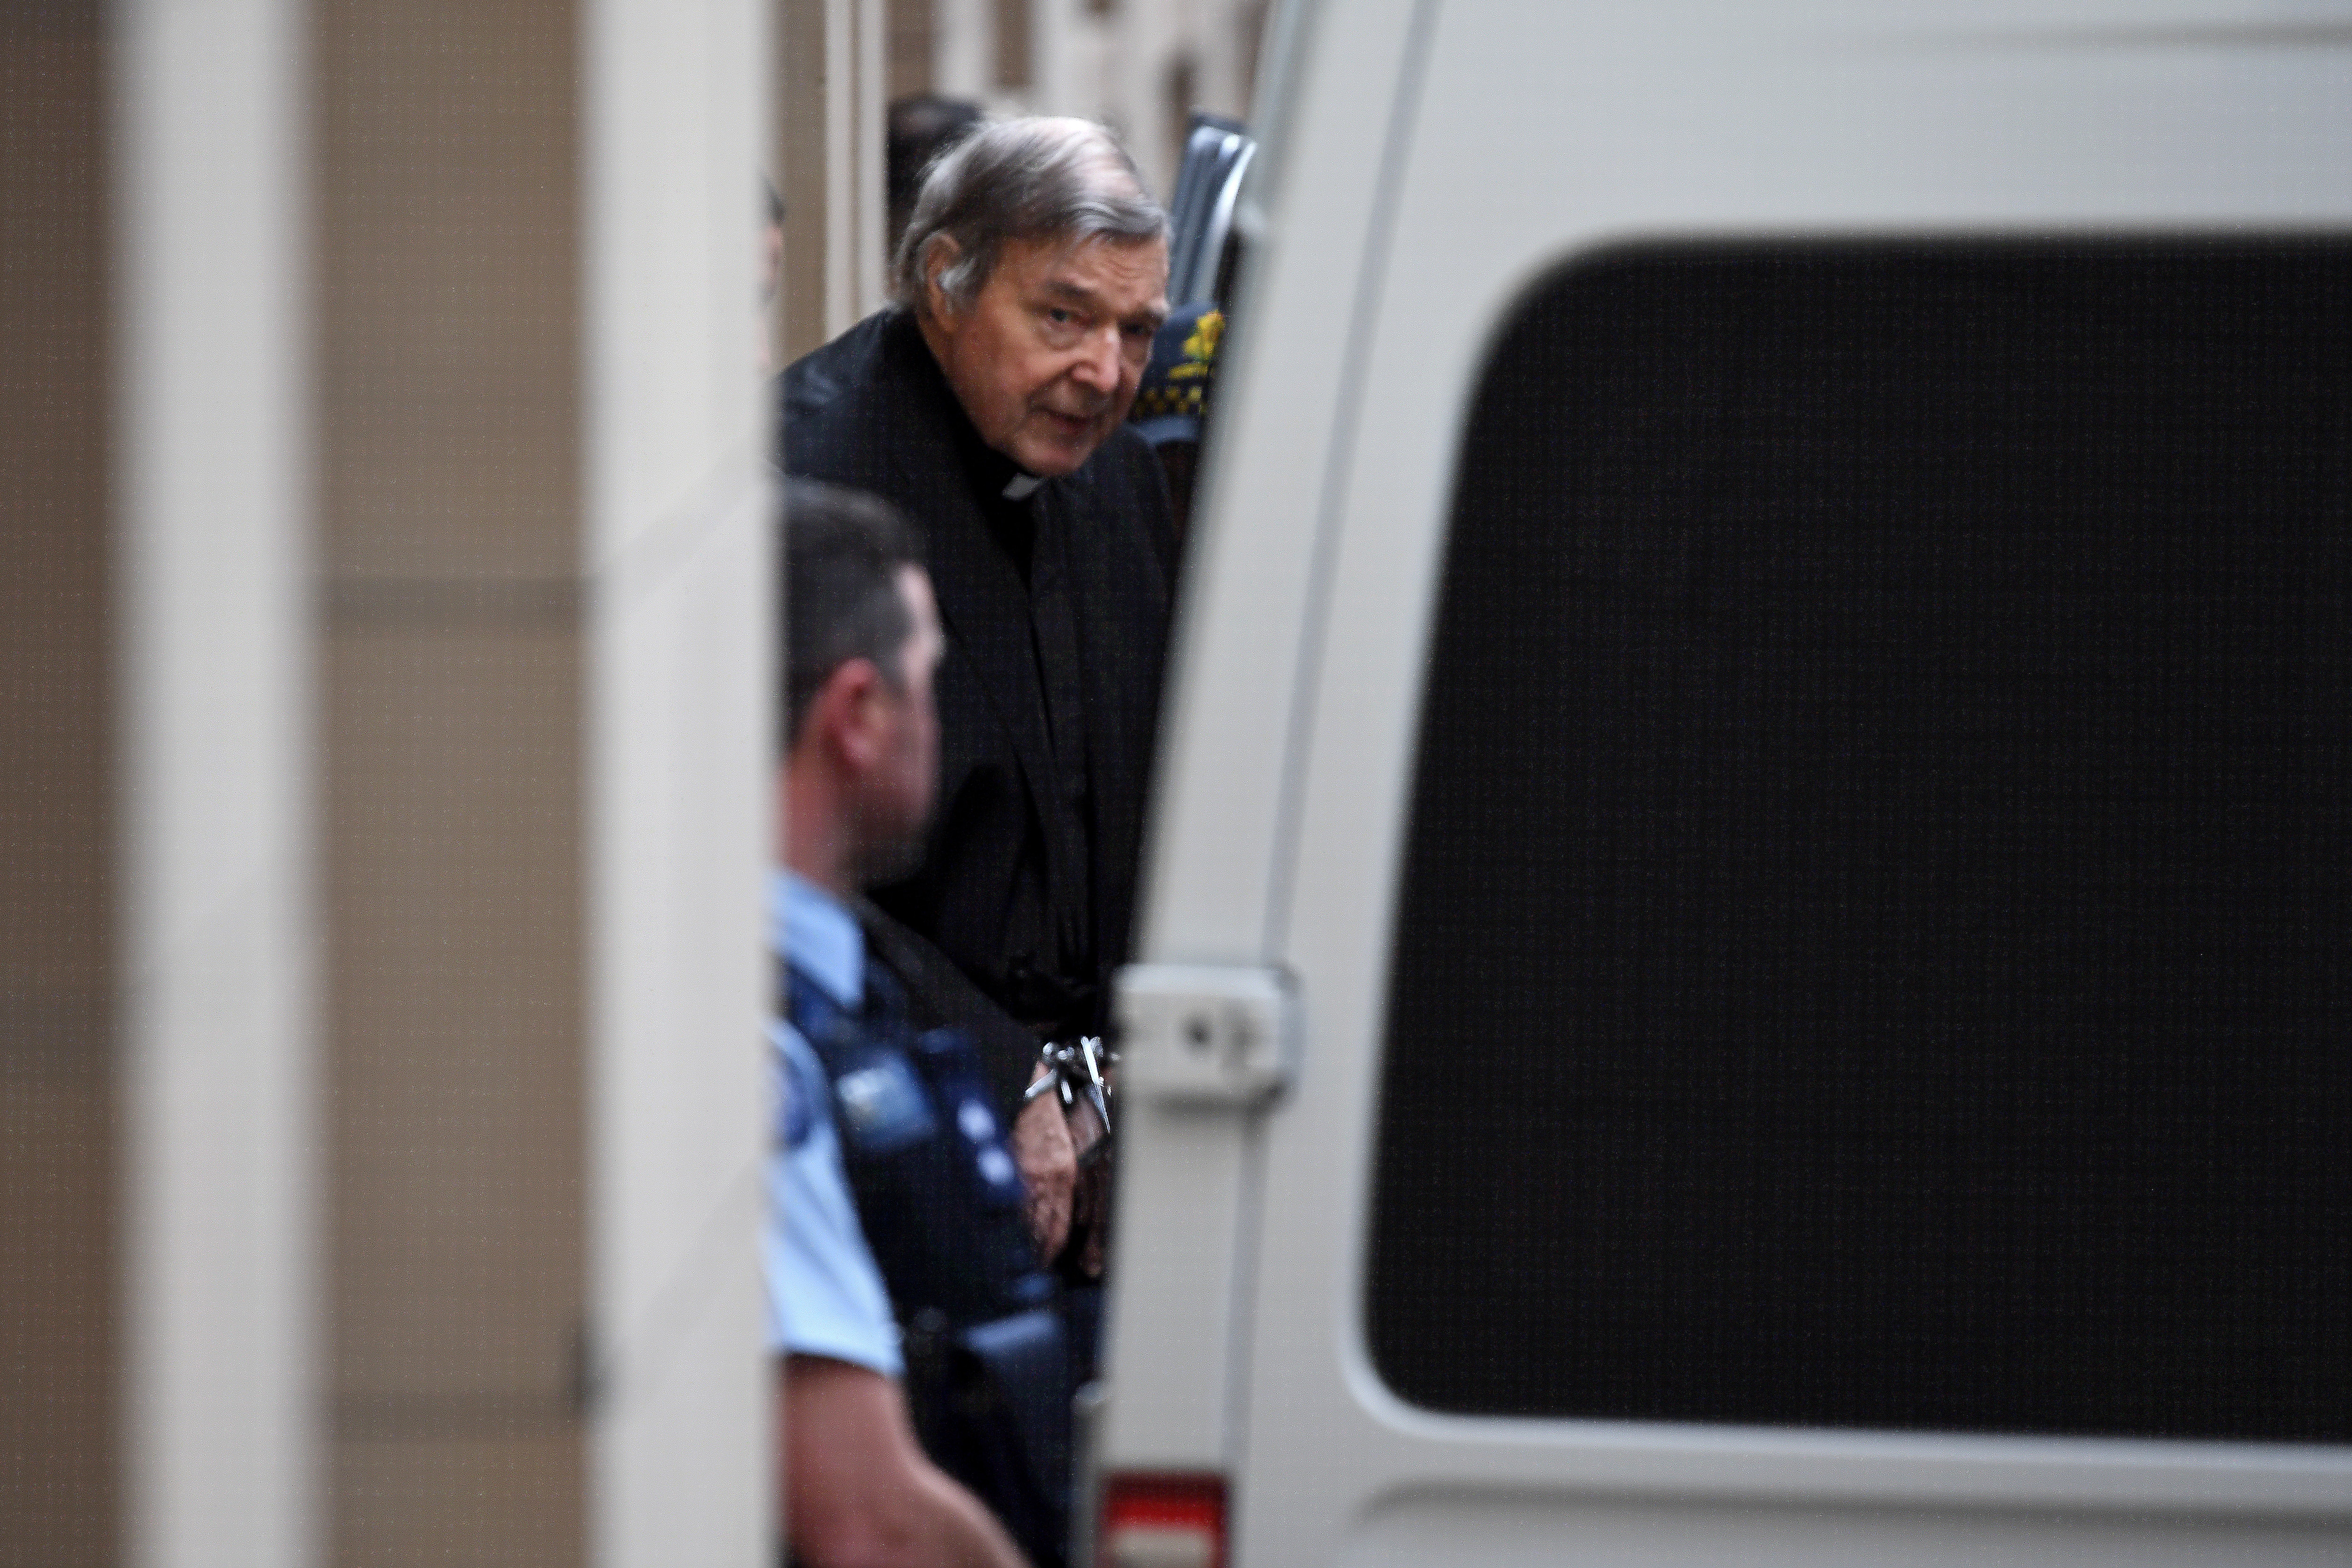 George Pell departs the Supreme Court of Victoria, Melbourne, Wednesday, August 21, 2019